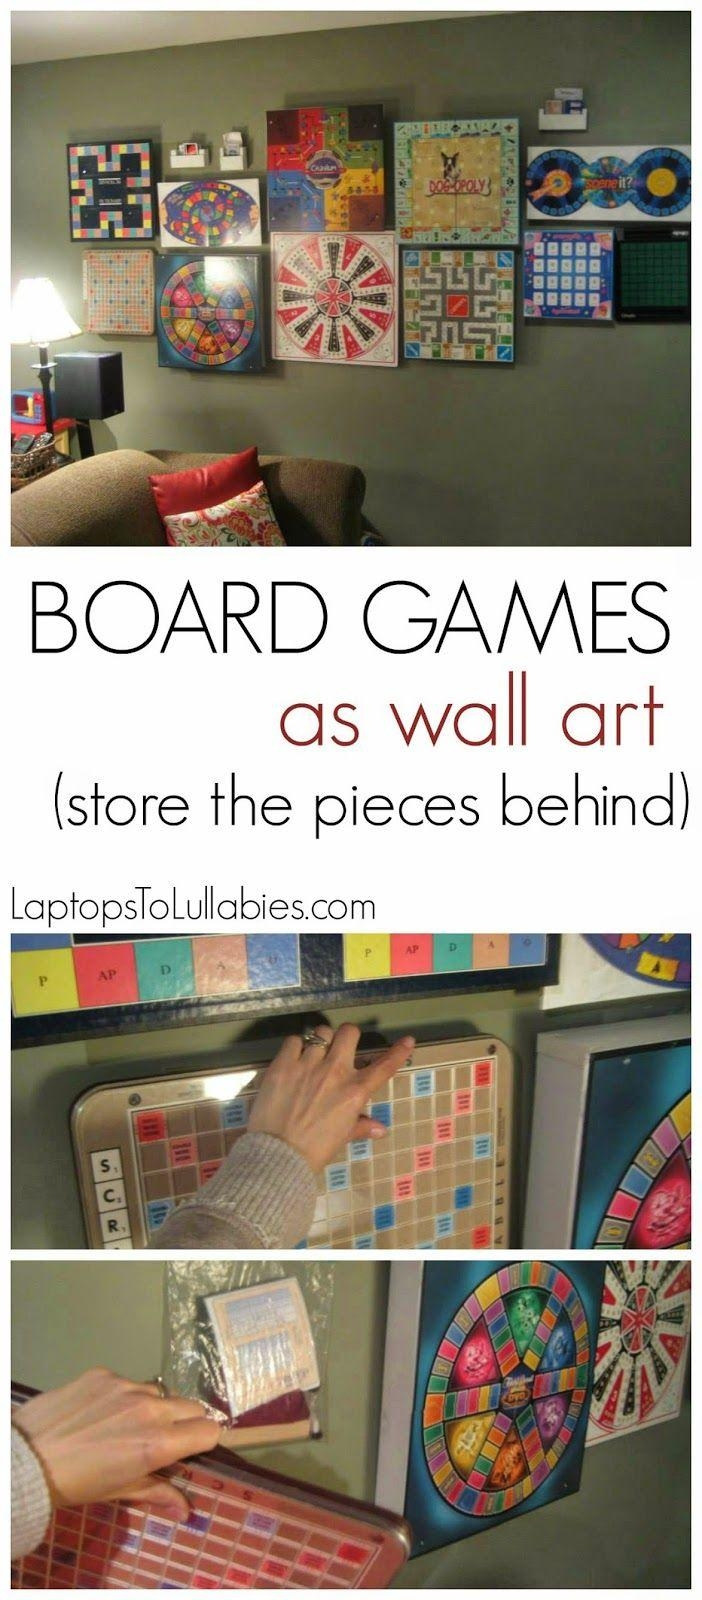 Best 25+ Game Room Decor Ideas On Pinterest | Game Room, Gameroom With Regard To Wall Art For Game Room (View 17 of 20)